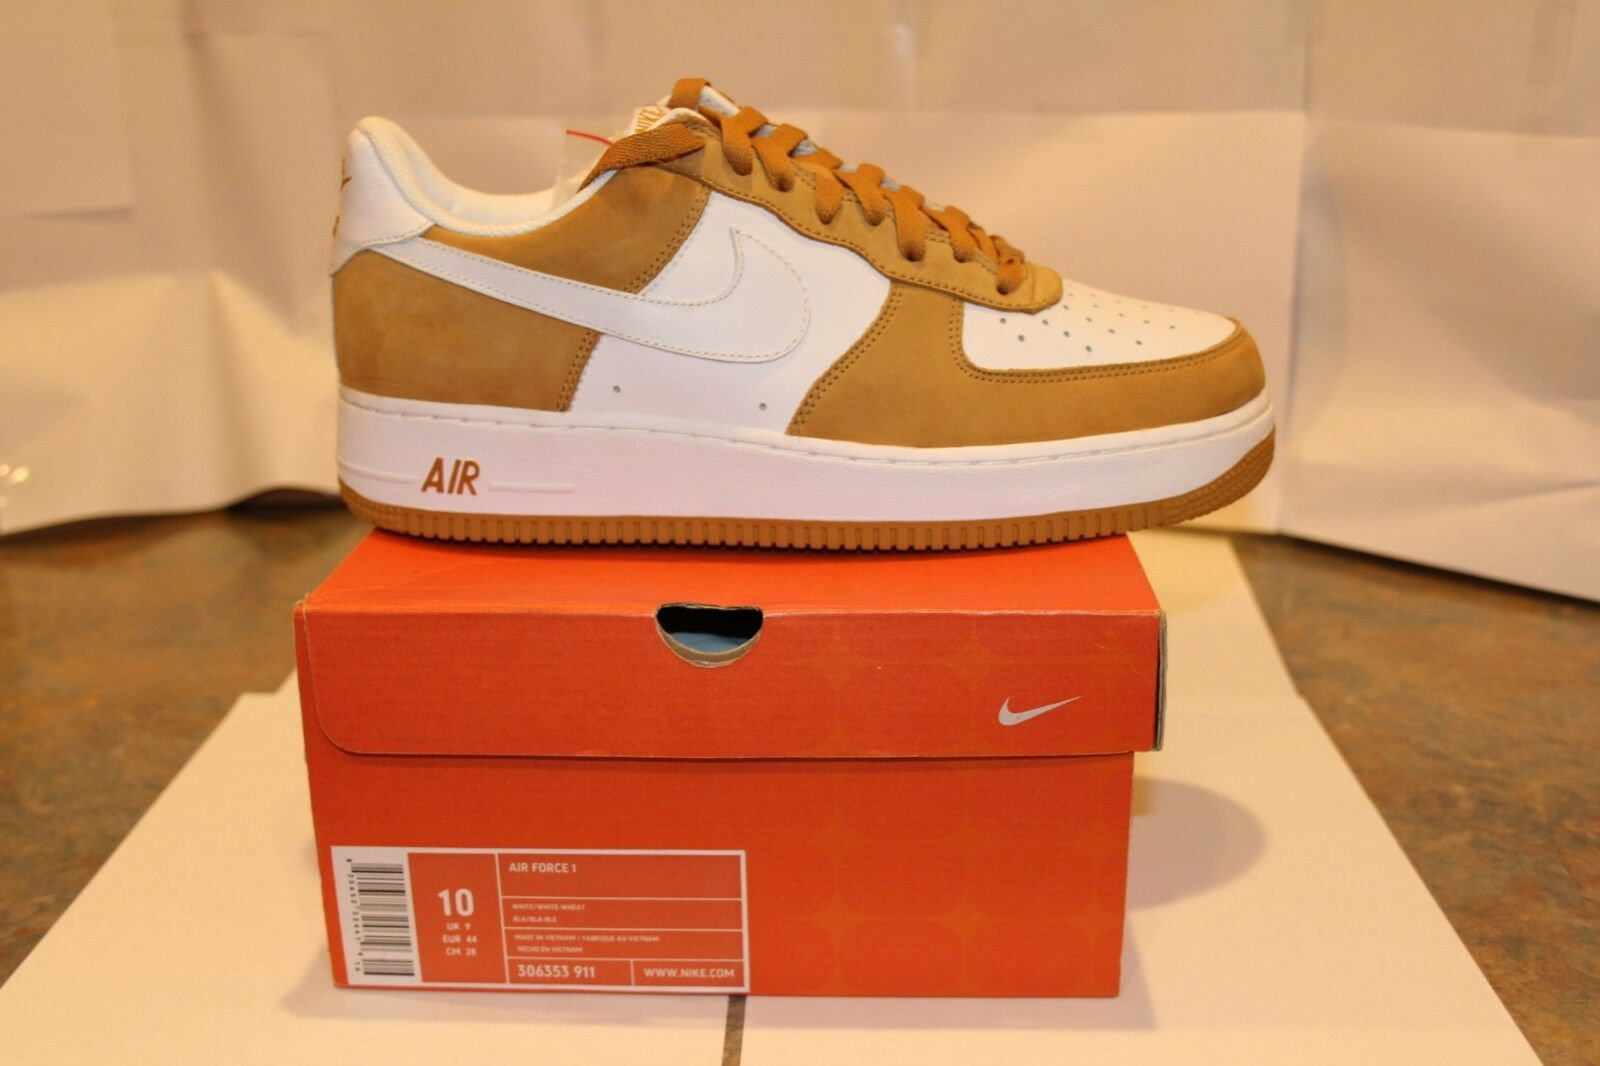 Nike AF 1 Limited Edition 1684 of 4008 numbered white white-wheat 10-COLLECTIBLE